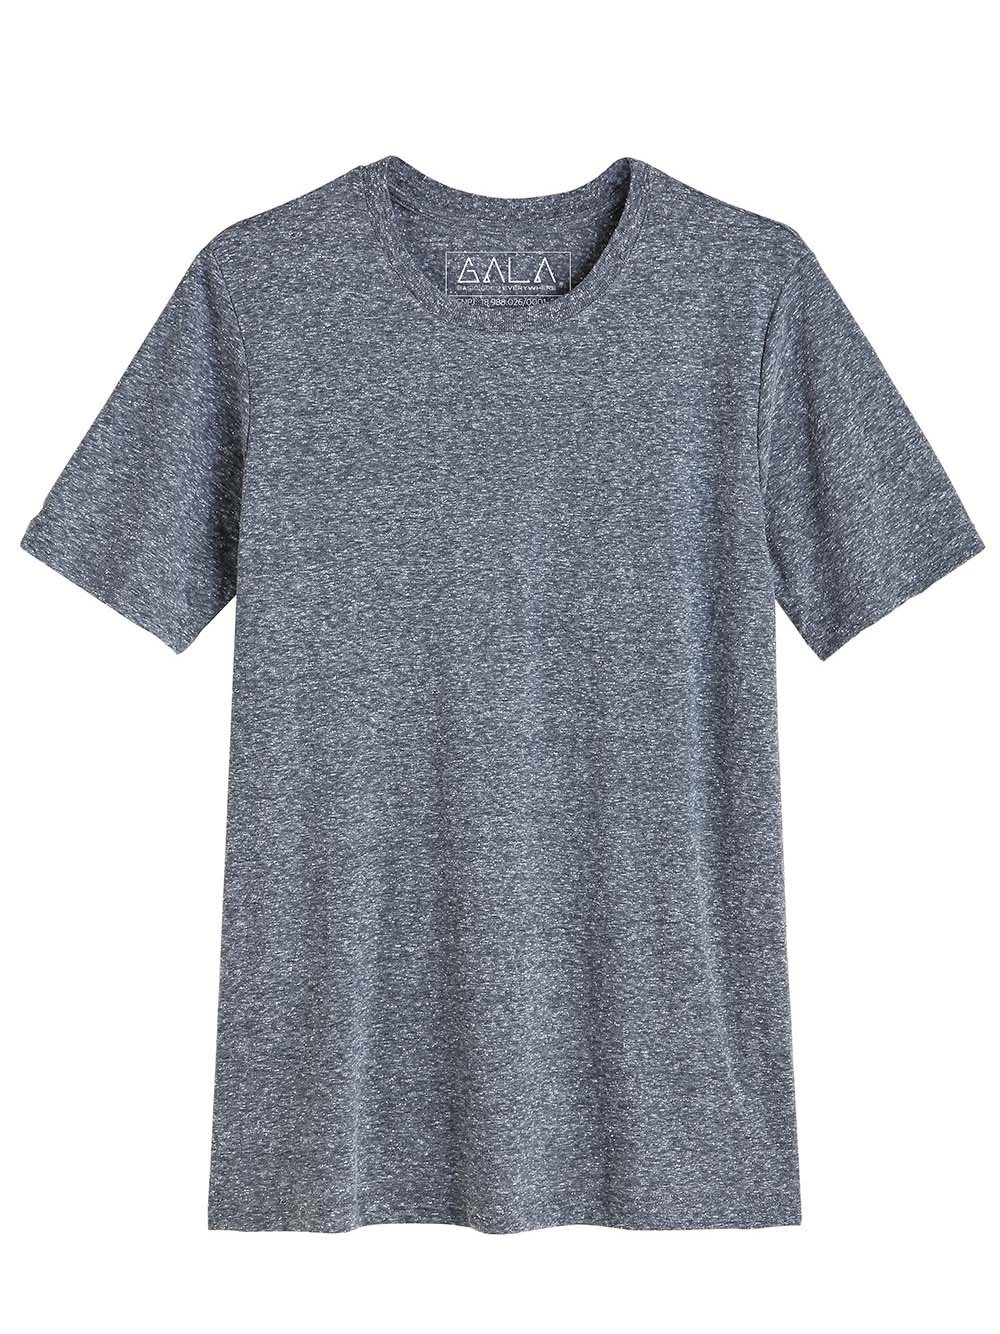 T-shirt Essencial Unissex Grey